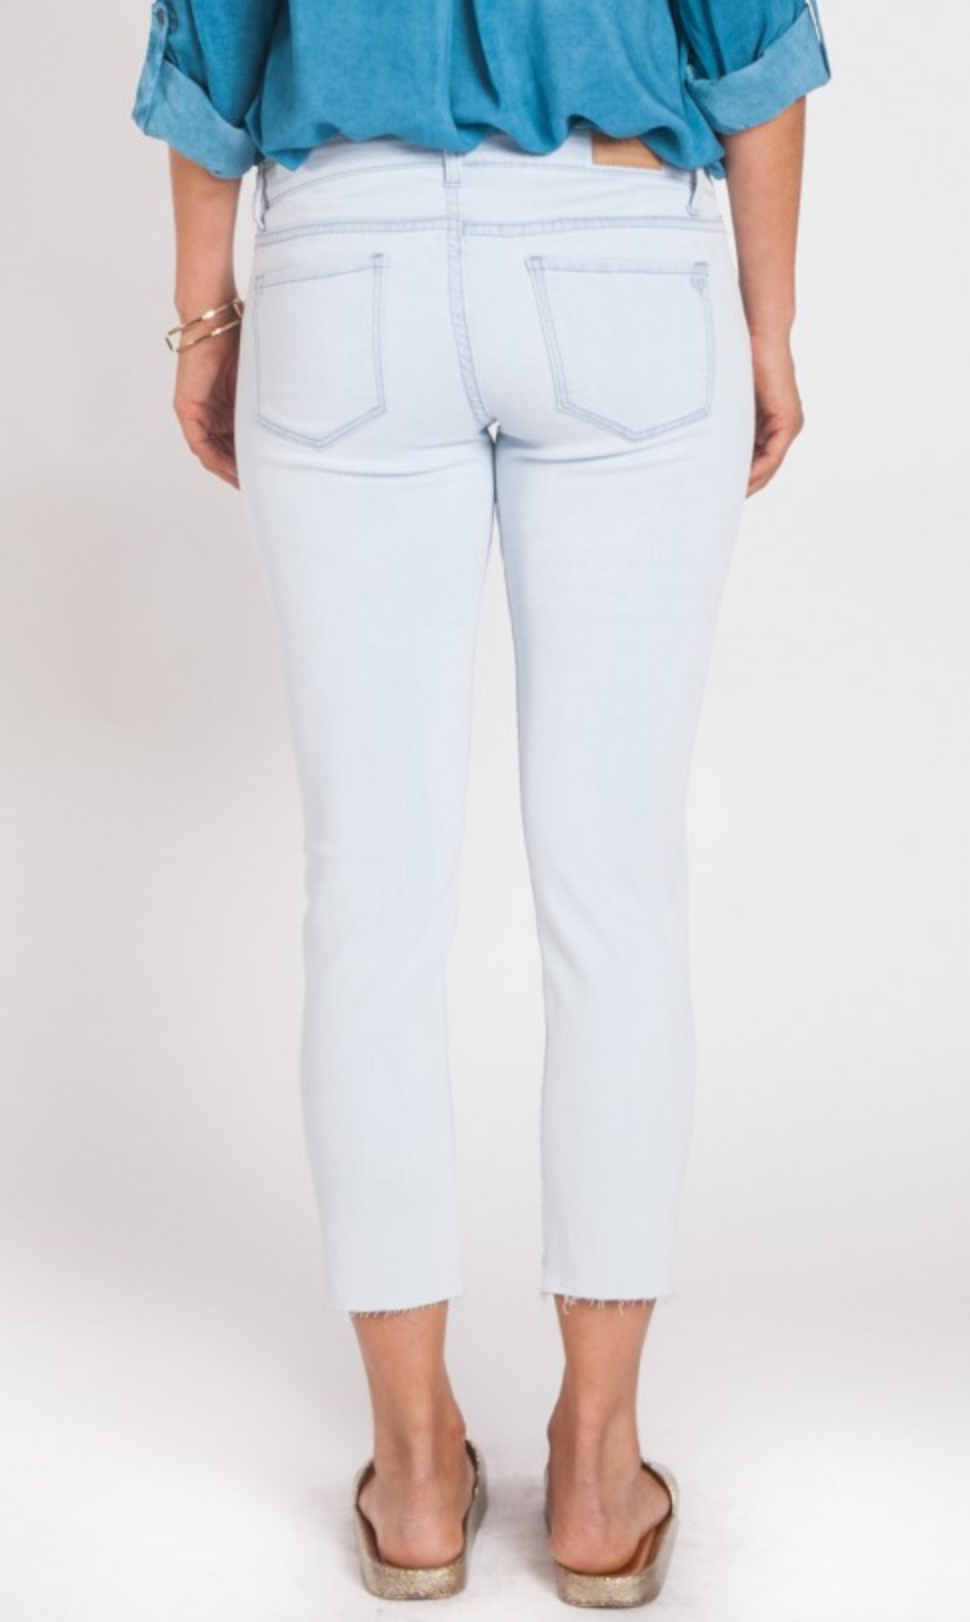 Summer Mid-Ankle Skinny Jean